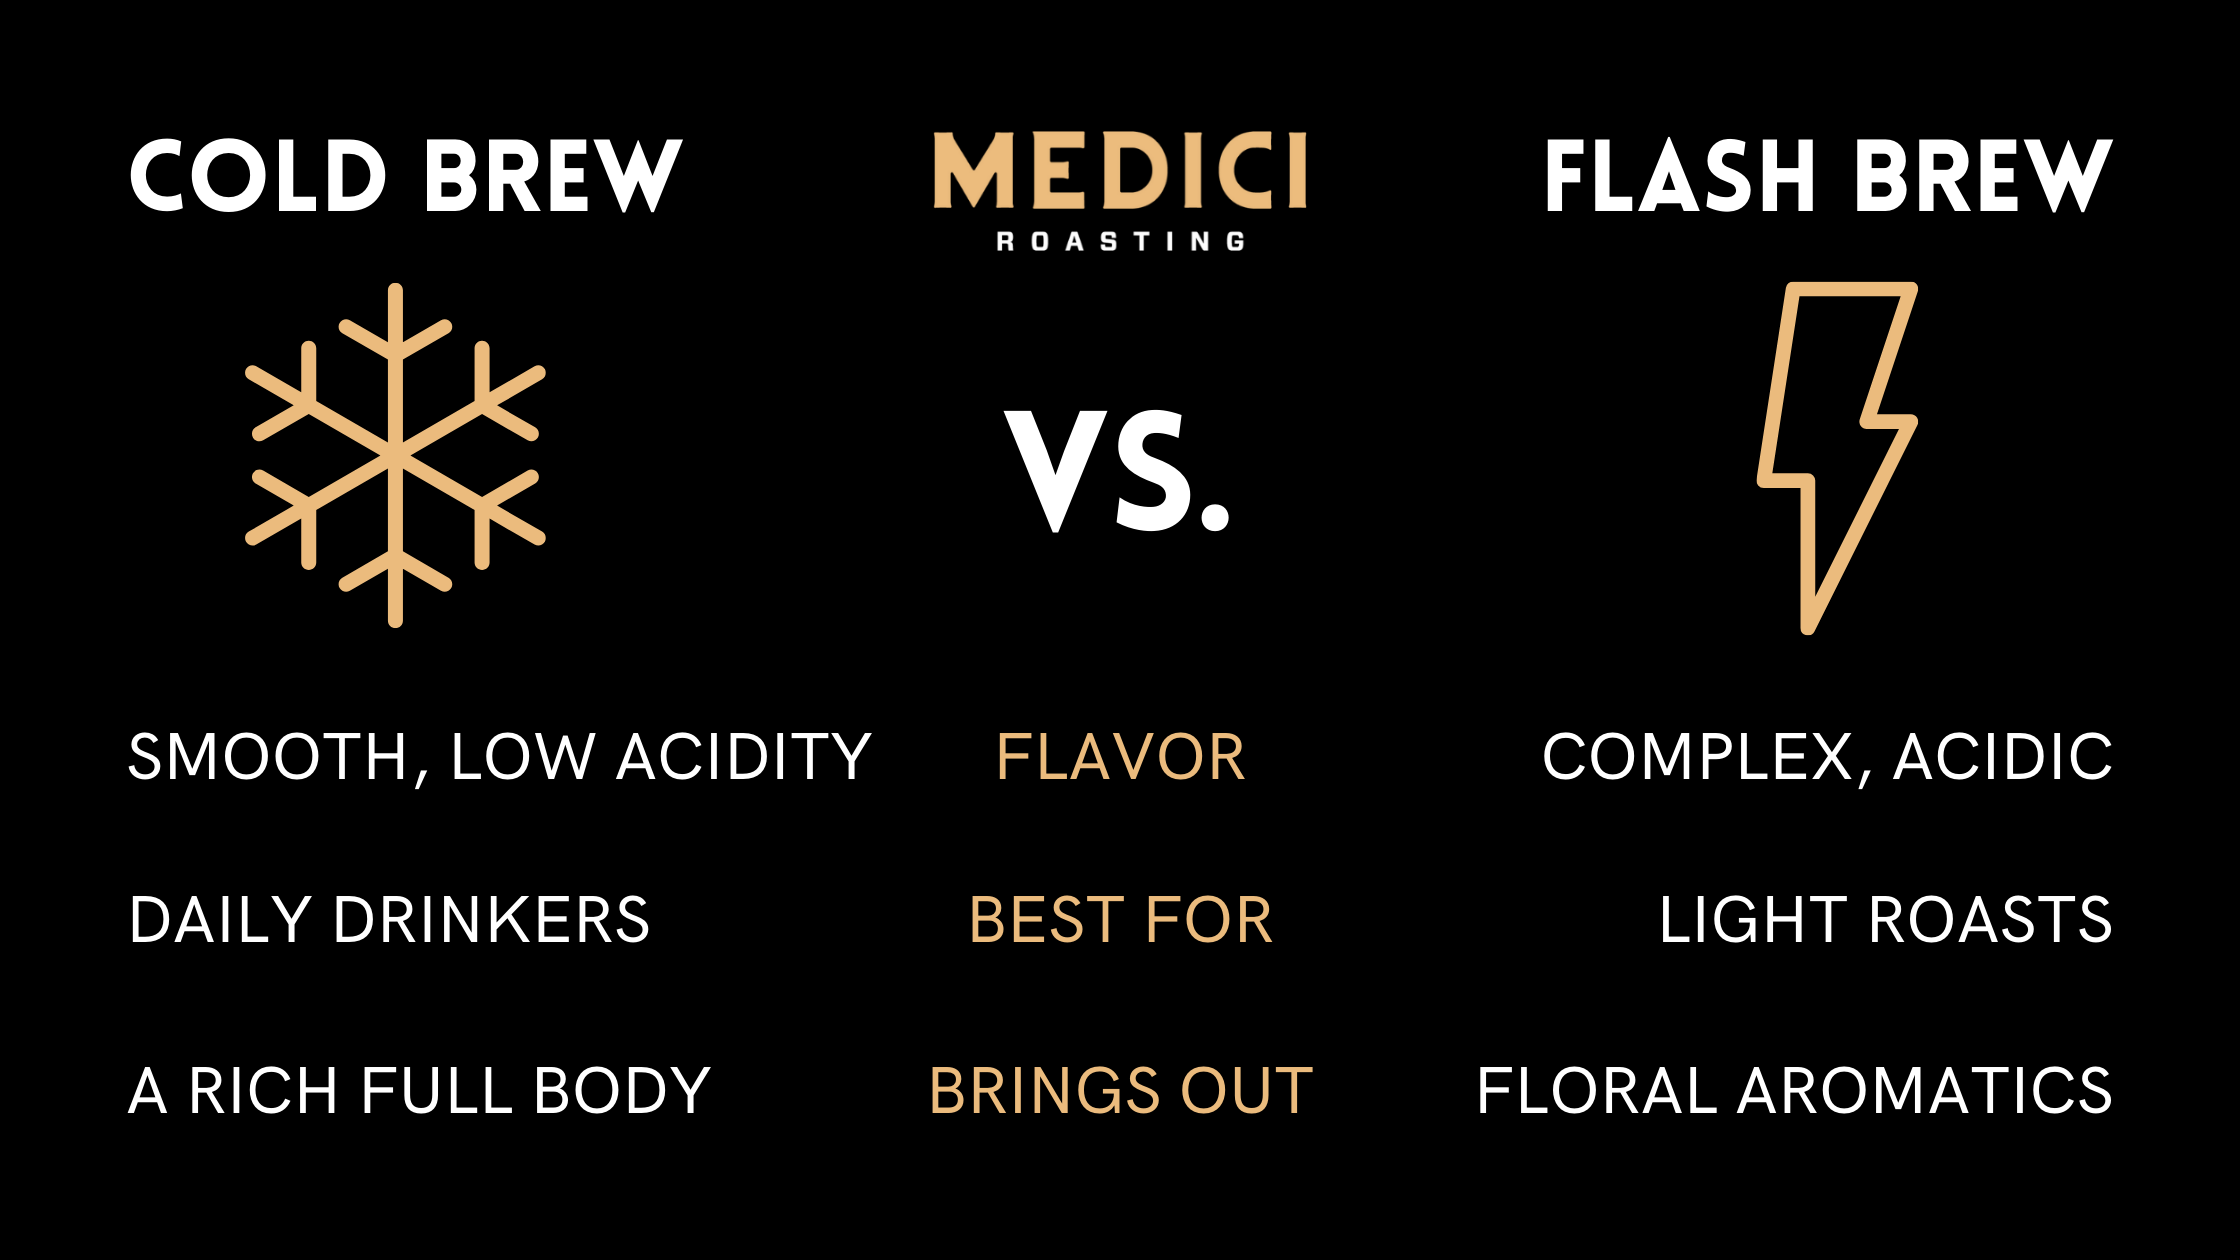 Difference between cold brew and flash brew